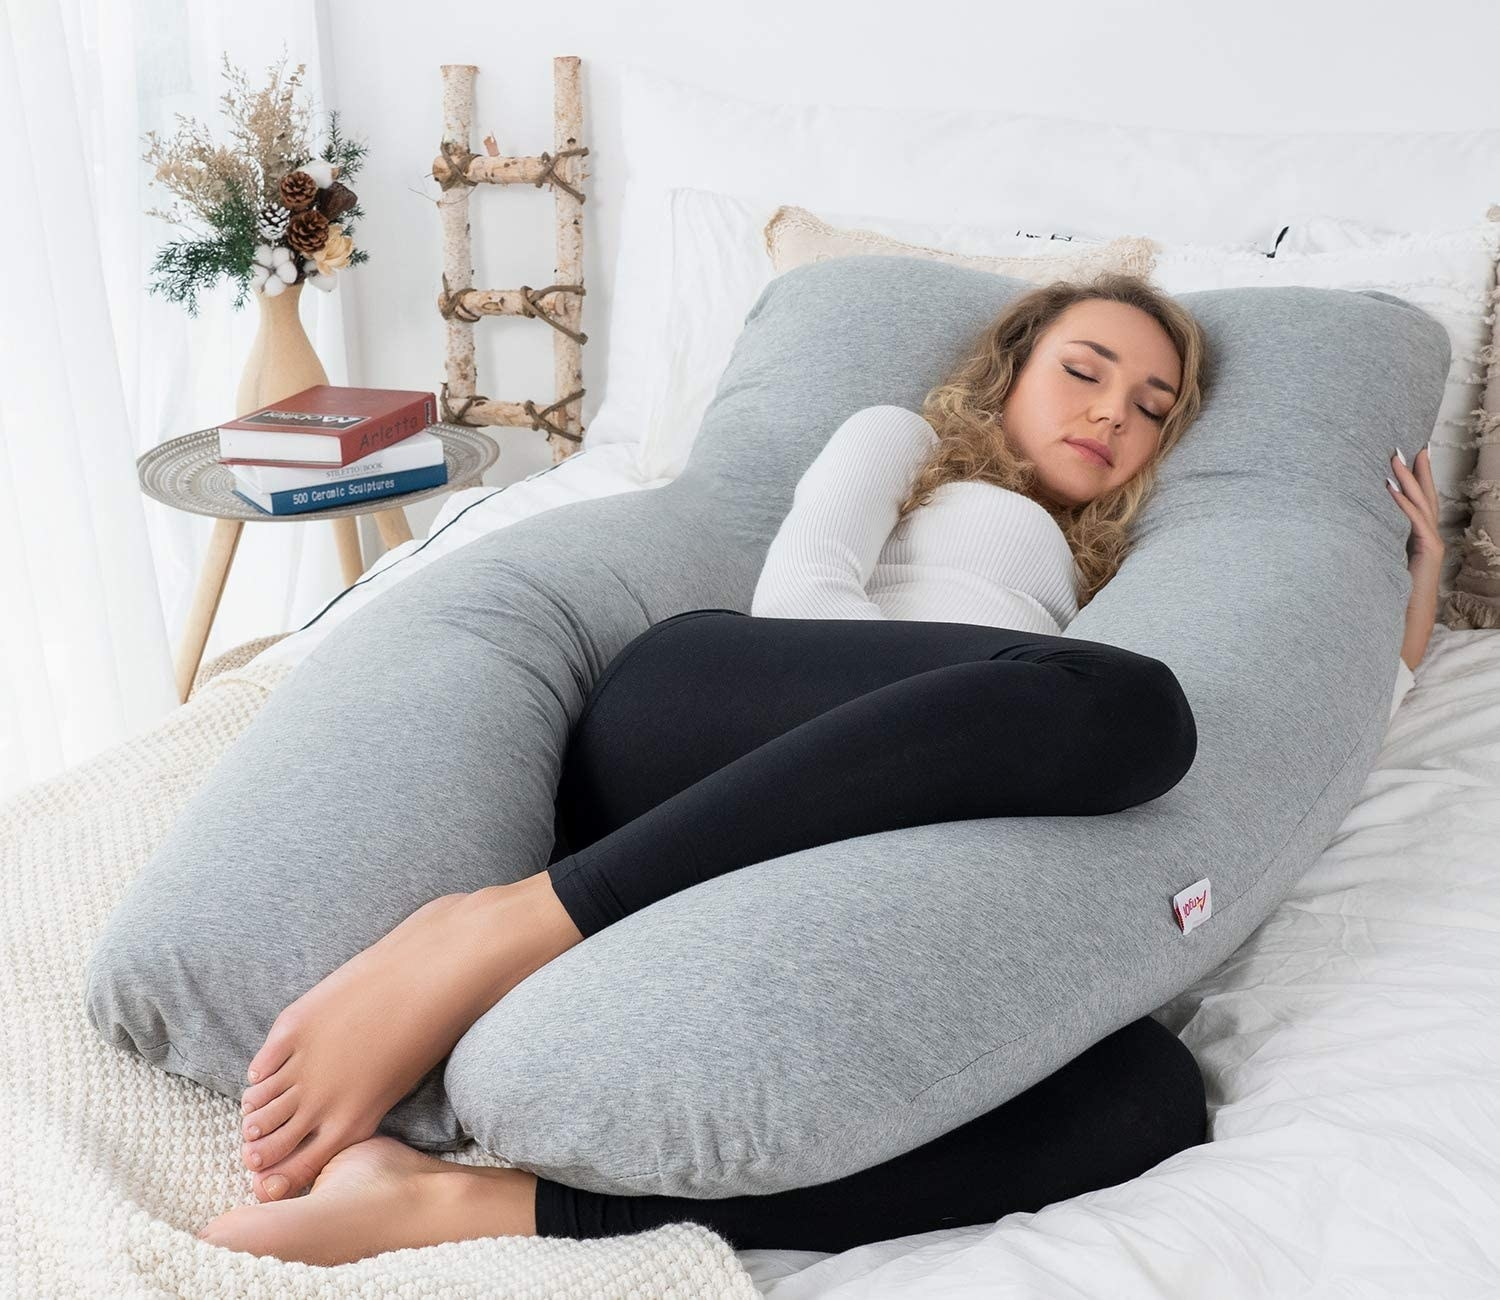 A person snoozing on the u-shaped body pillow